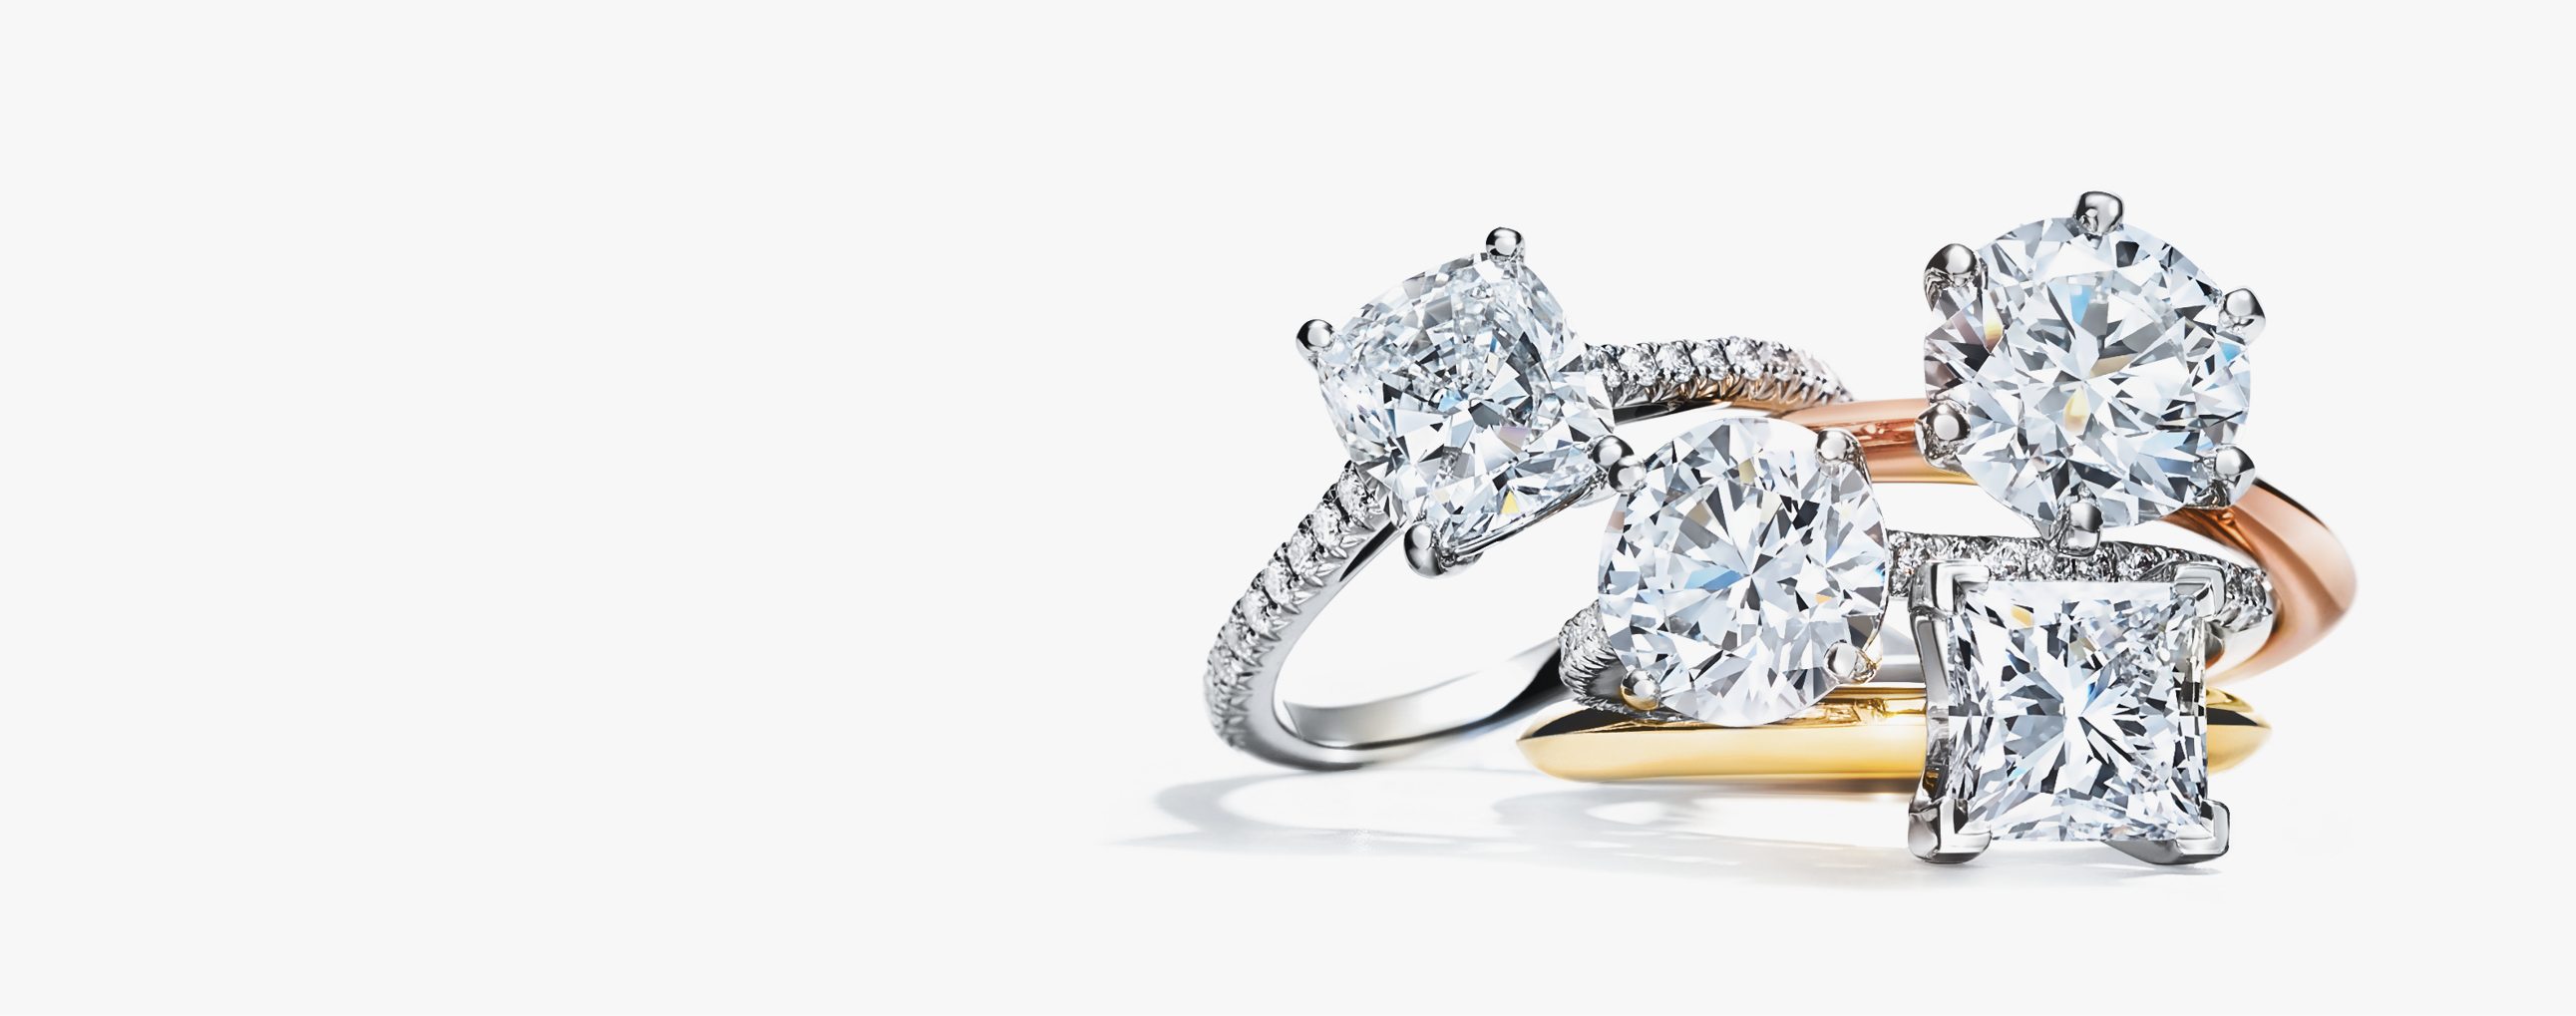 Tiffany & Co Customize Engagement Ring